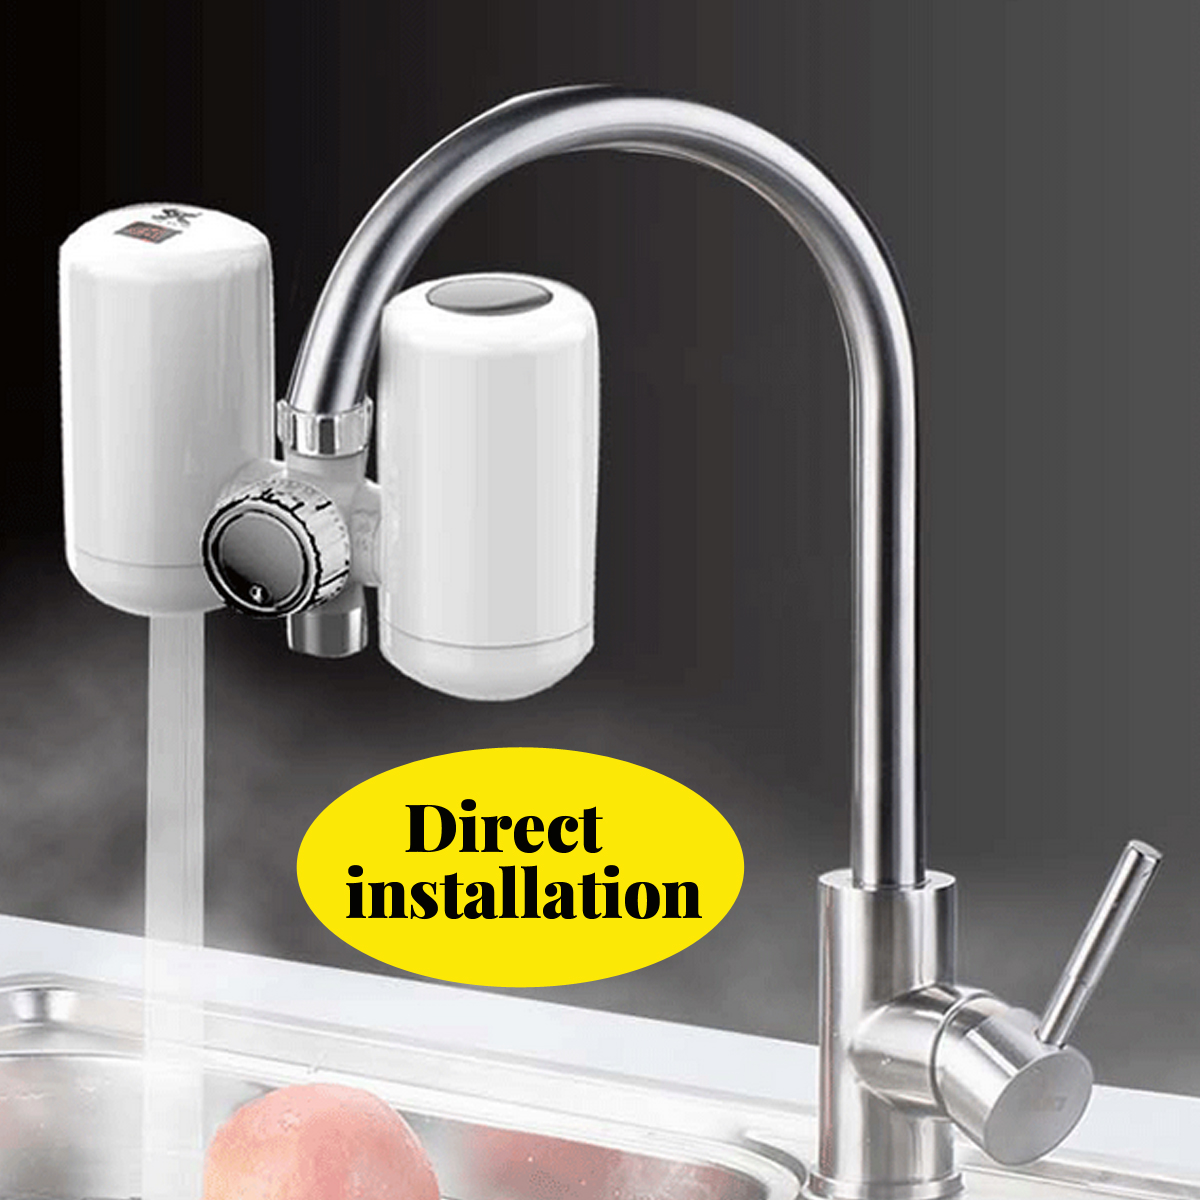 3000W 220V Electric Instant Hot Water Heater Sink Faucet Kitchen Heating Tap Free Installation